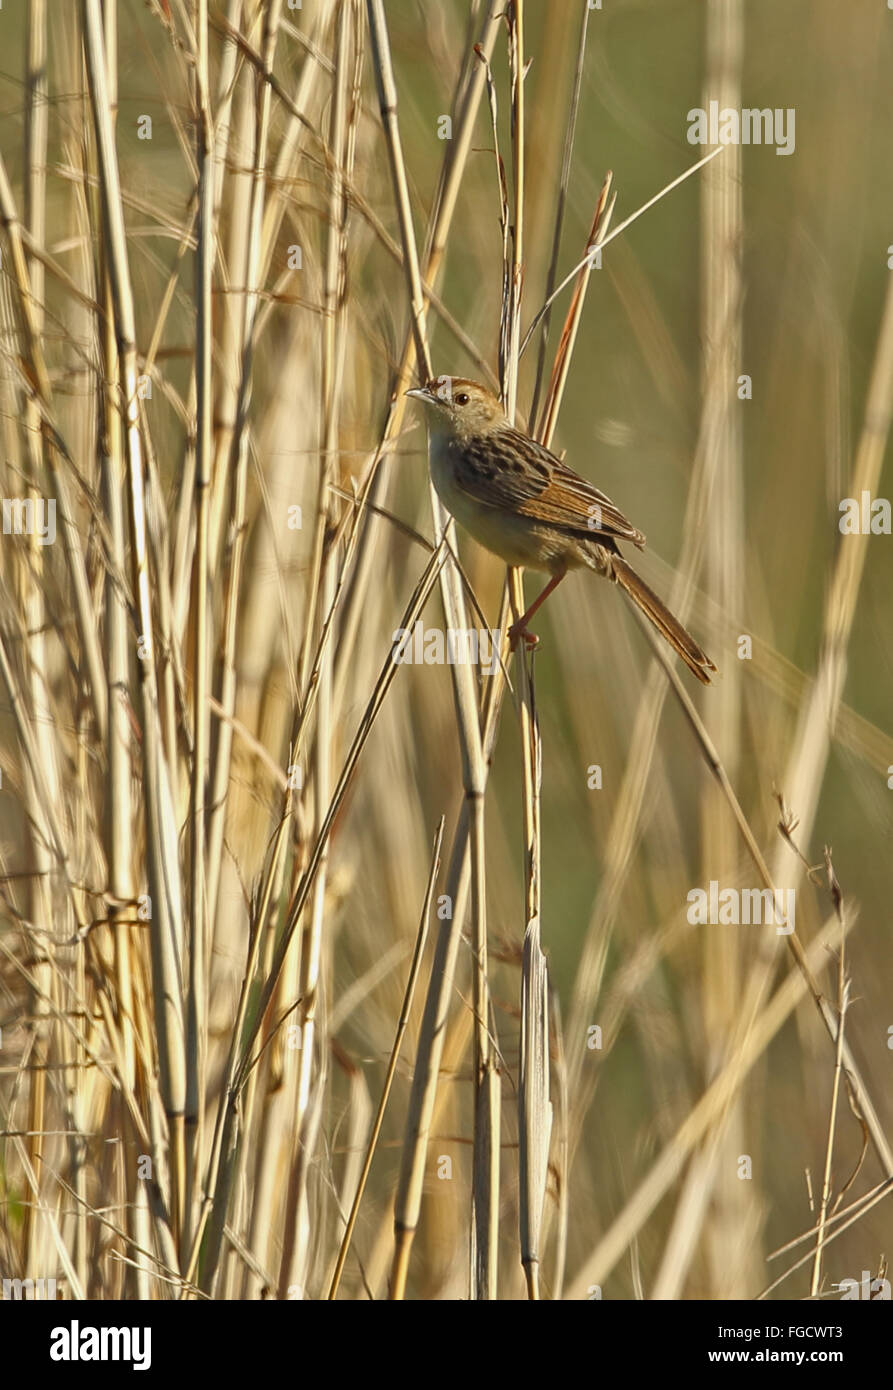 Wailing Cisticola (Cisticola lais) adult, perched on reed stem, Wakkerstroom, Mpumalanga, South Africa, November - Stock Image